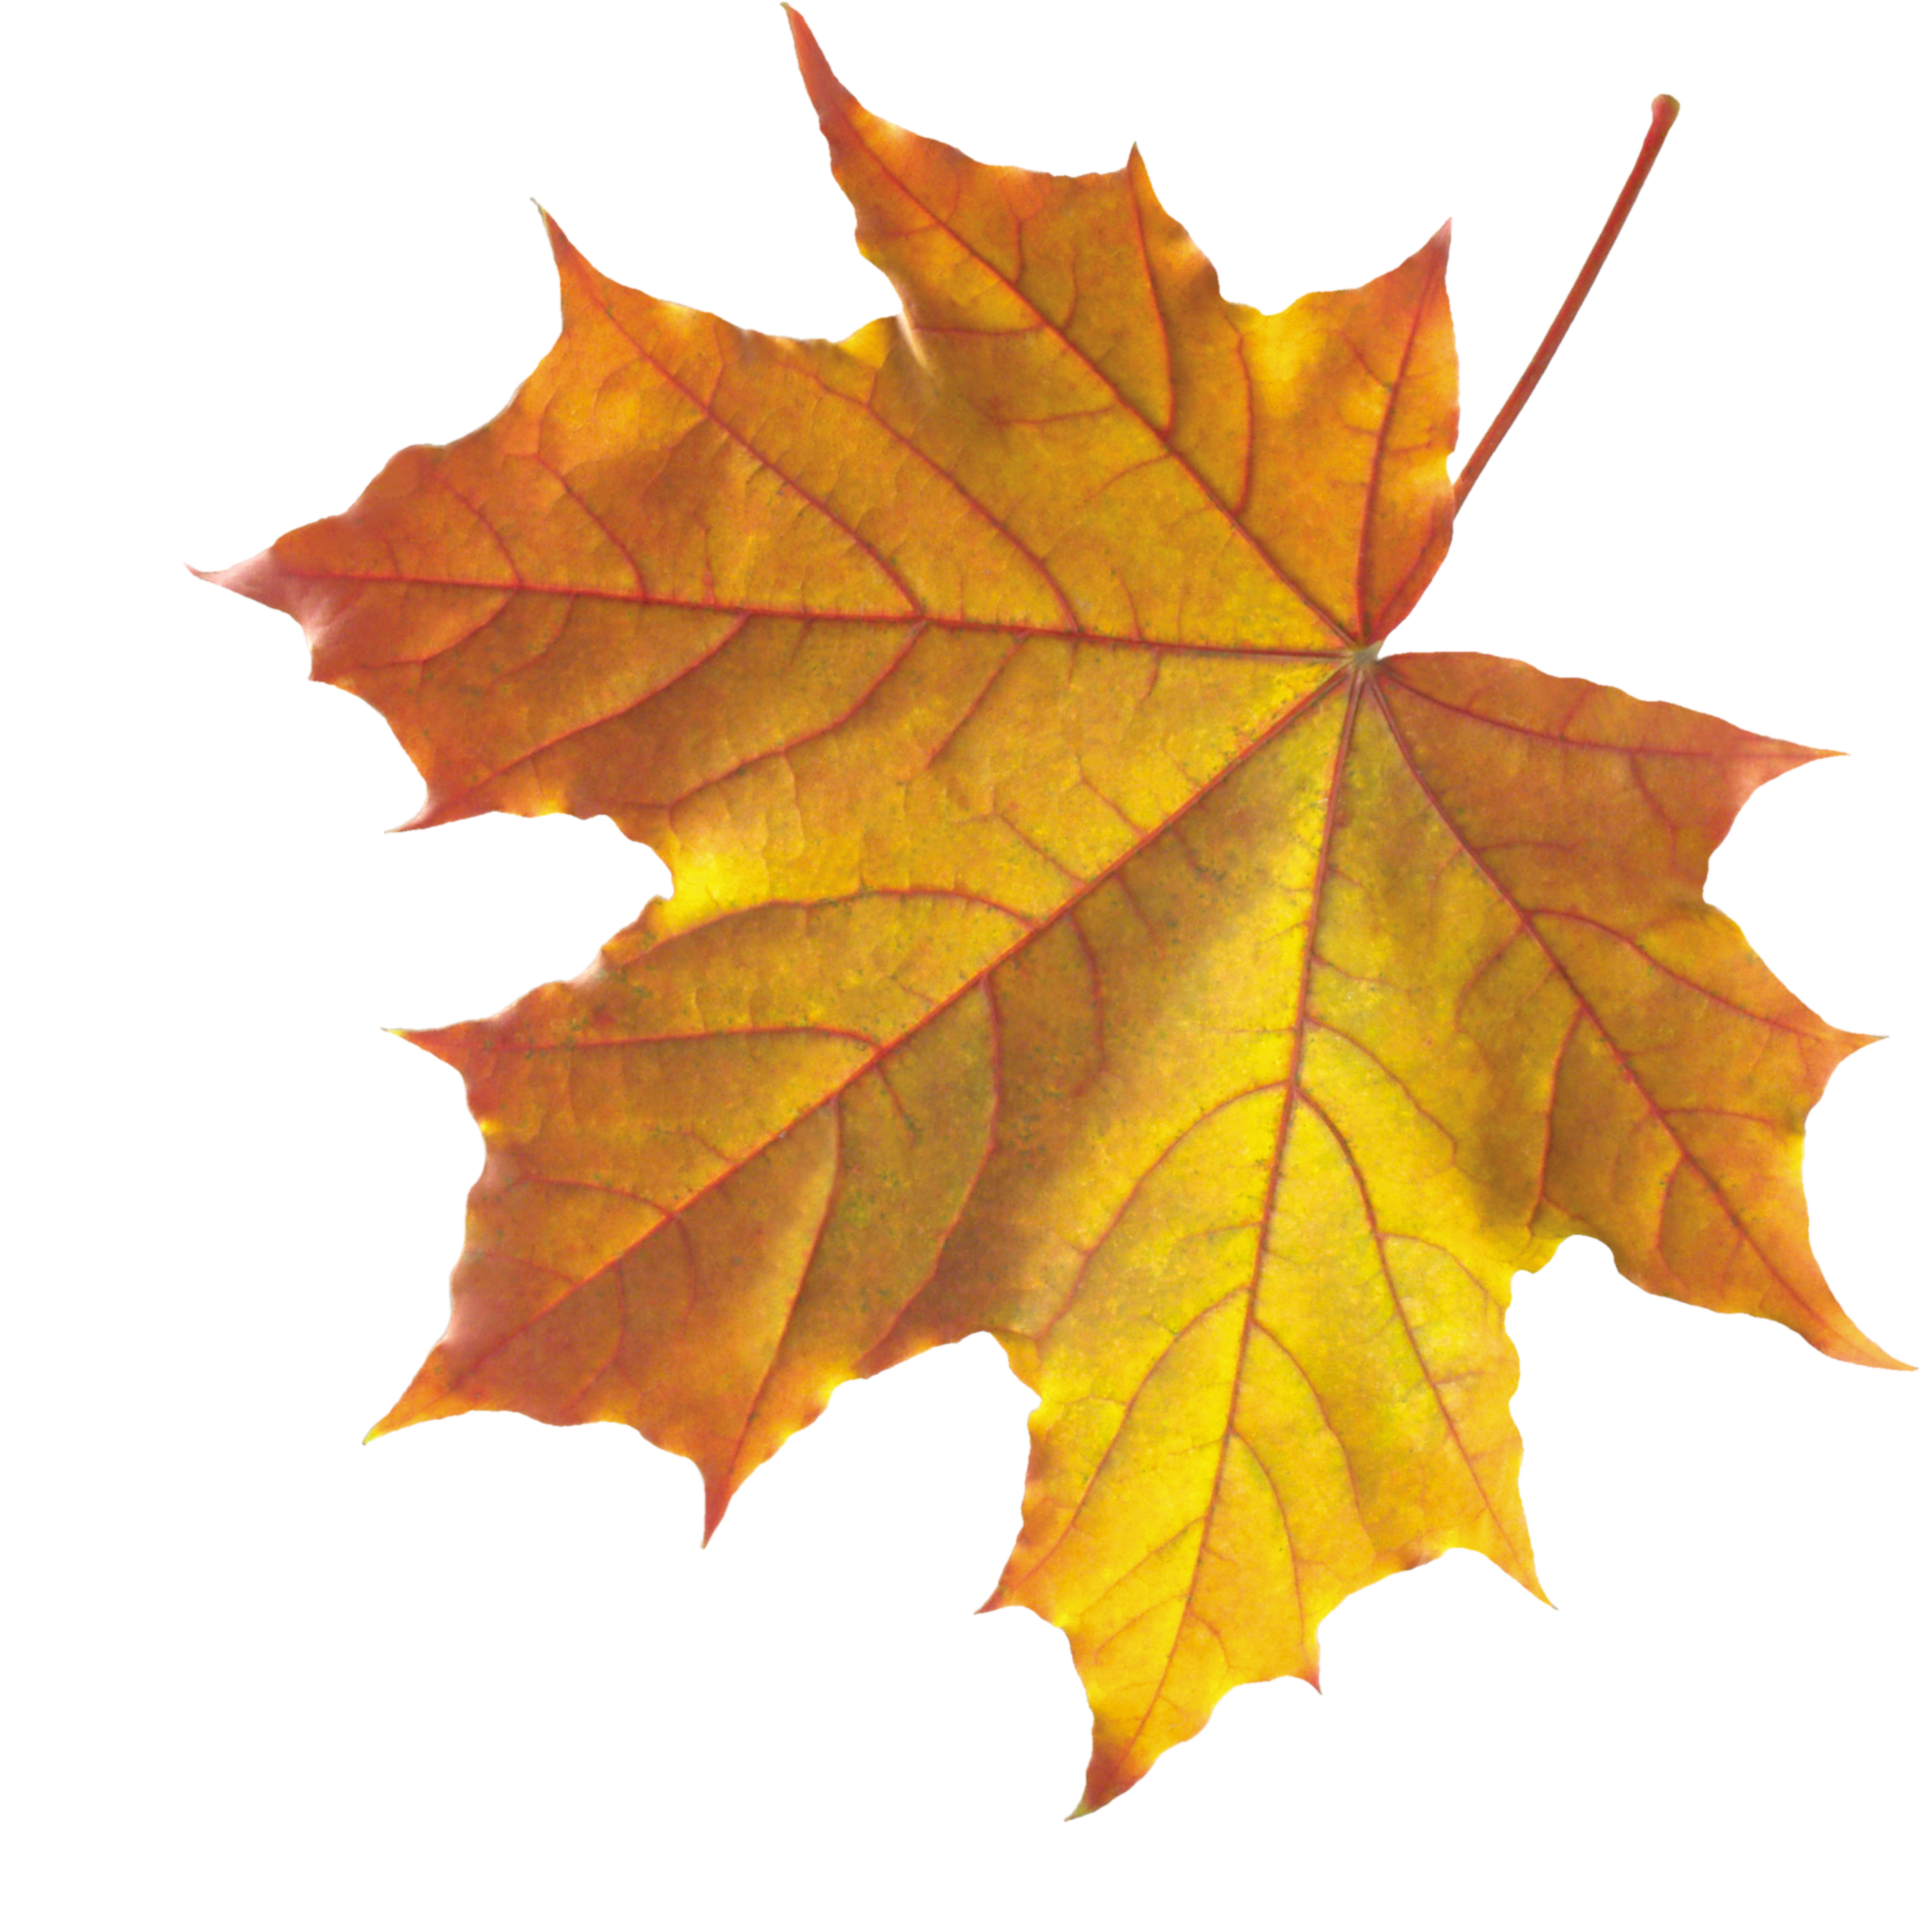 Falling leaf png. Autumn leaves images free